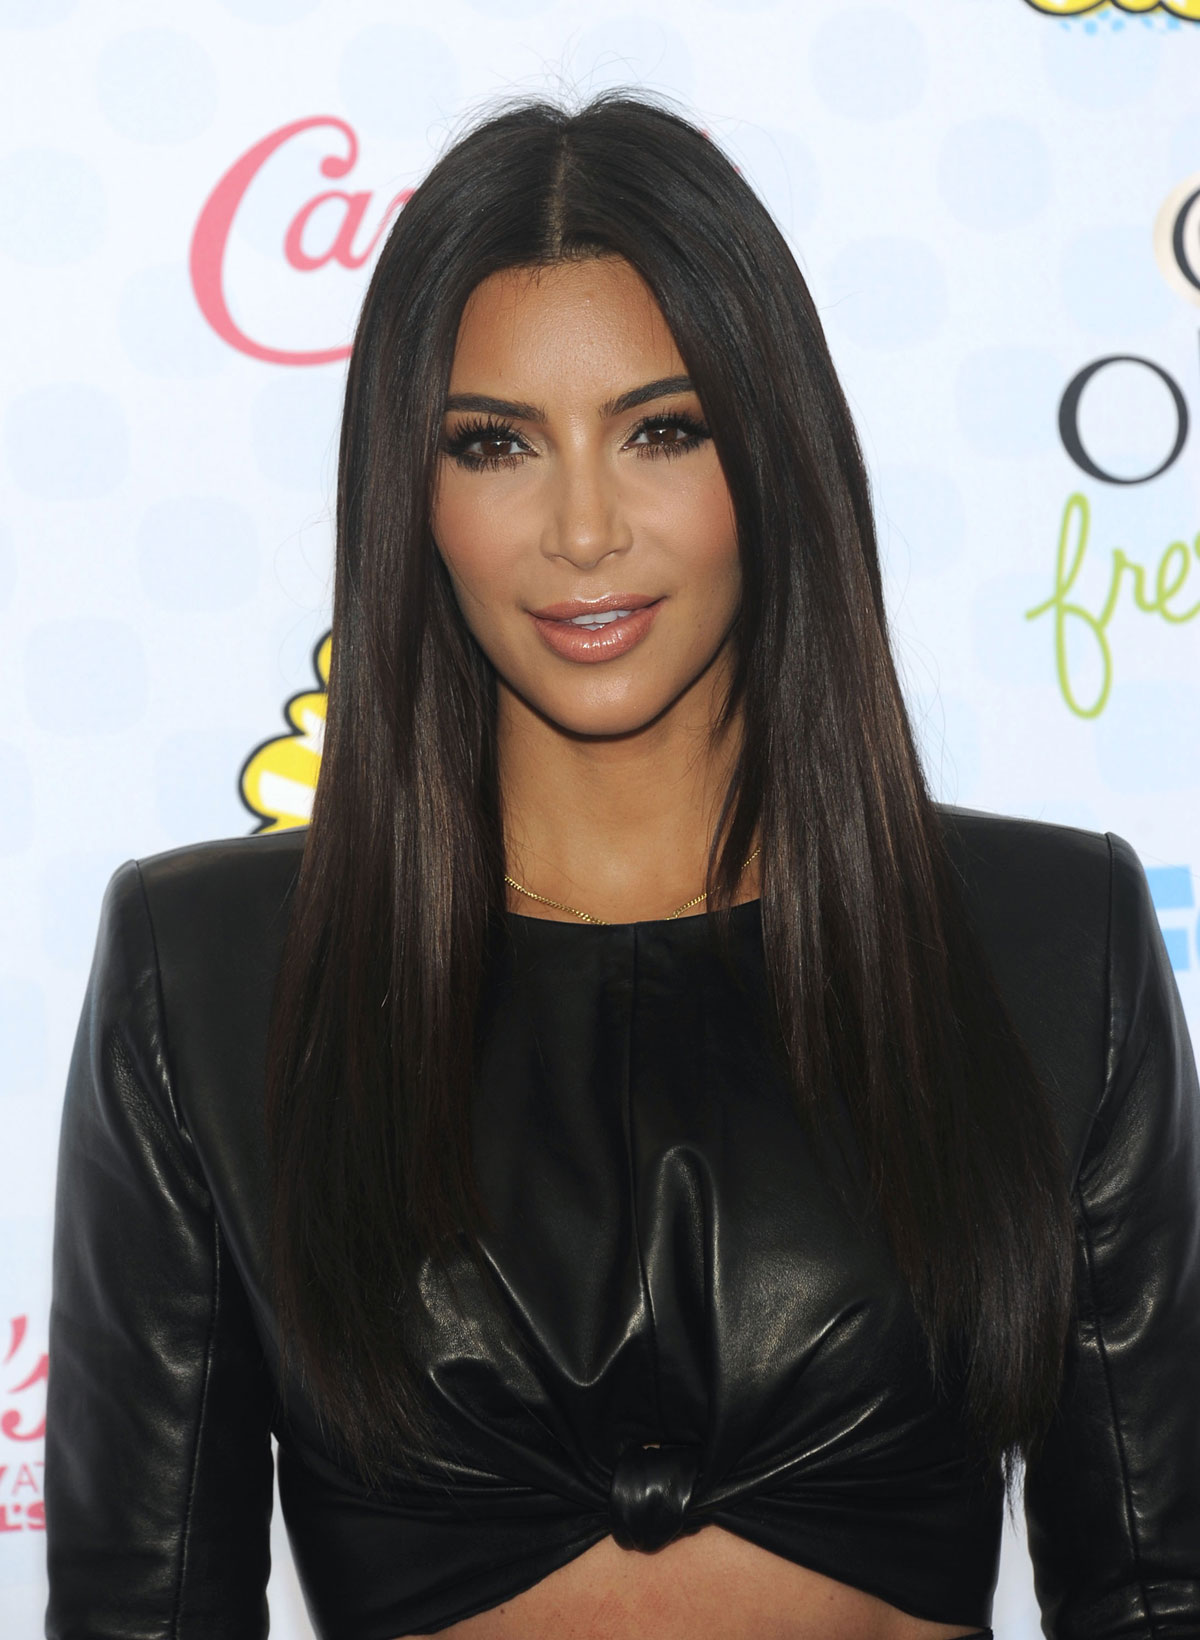 Kim Kardashian attends FOX 2014 Teen Choice Awards